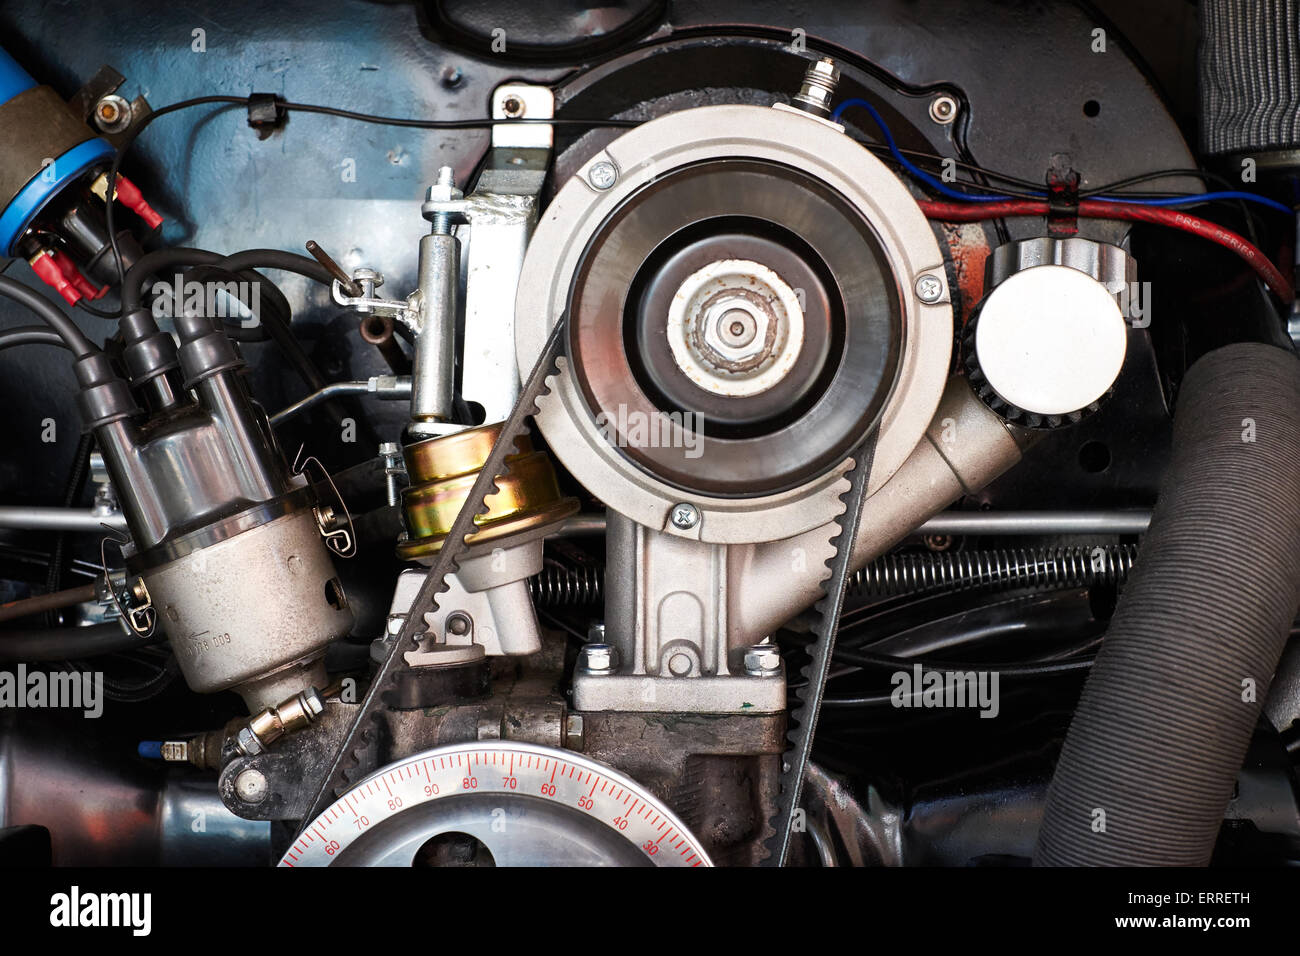 Abstract of an air cooled VW camper engine at the Skipton Car Show 2015 - Stock Image